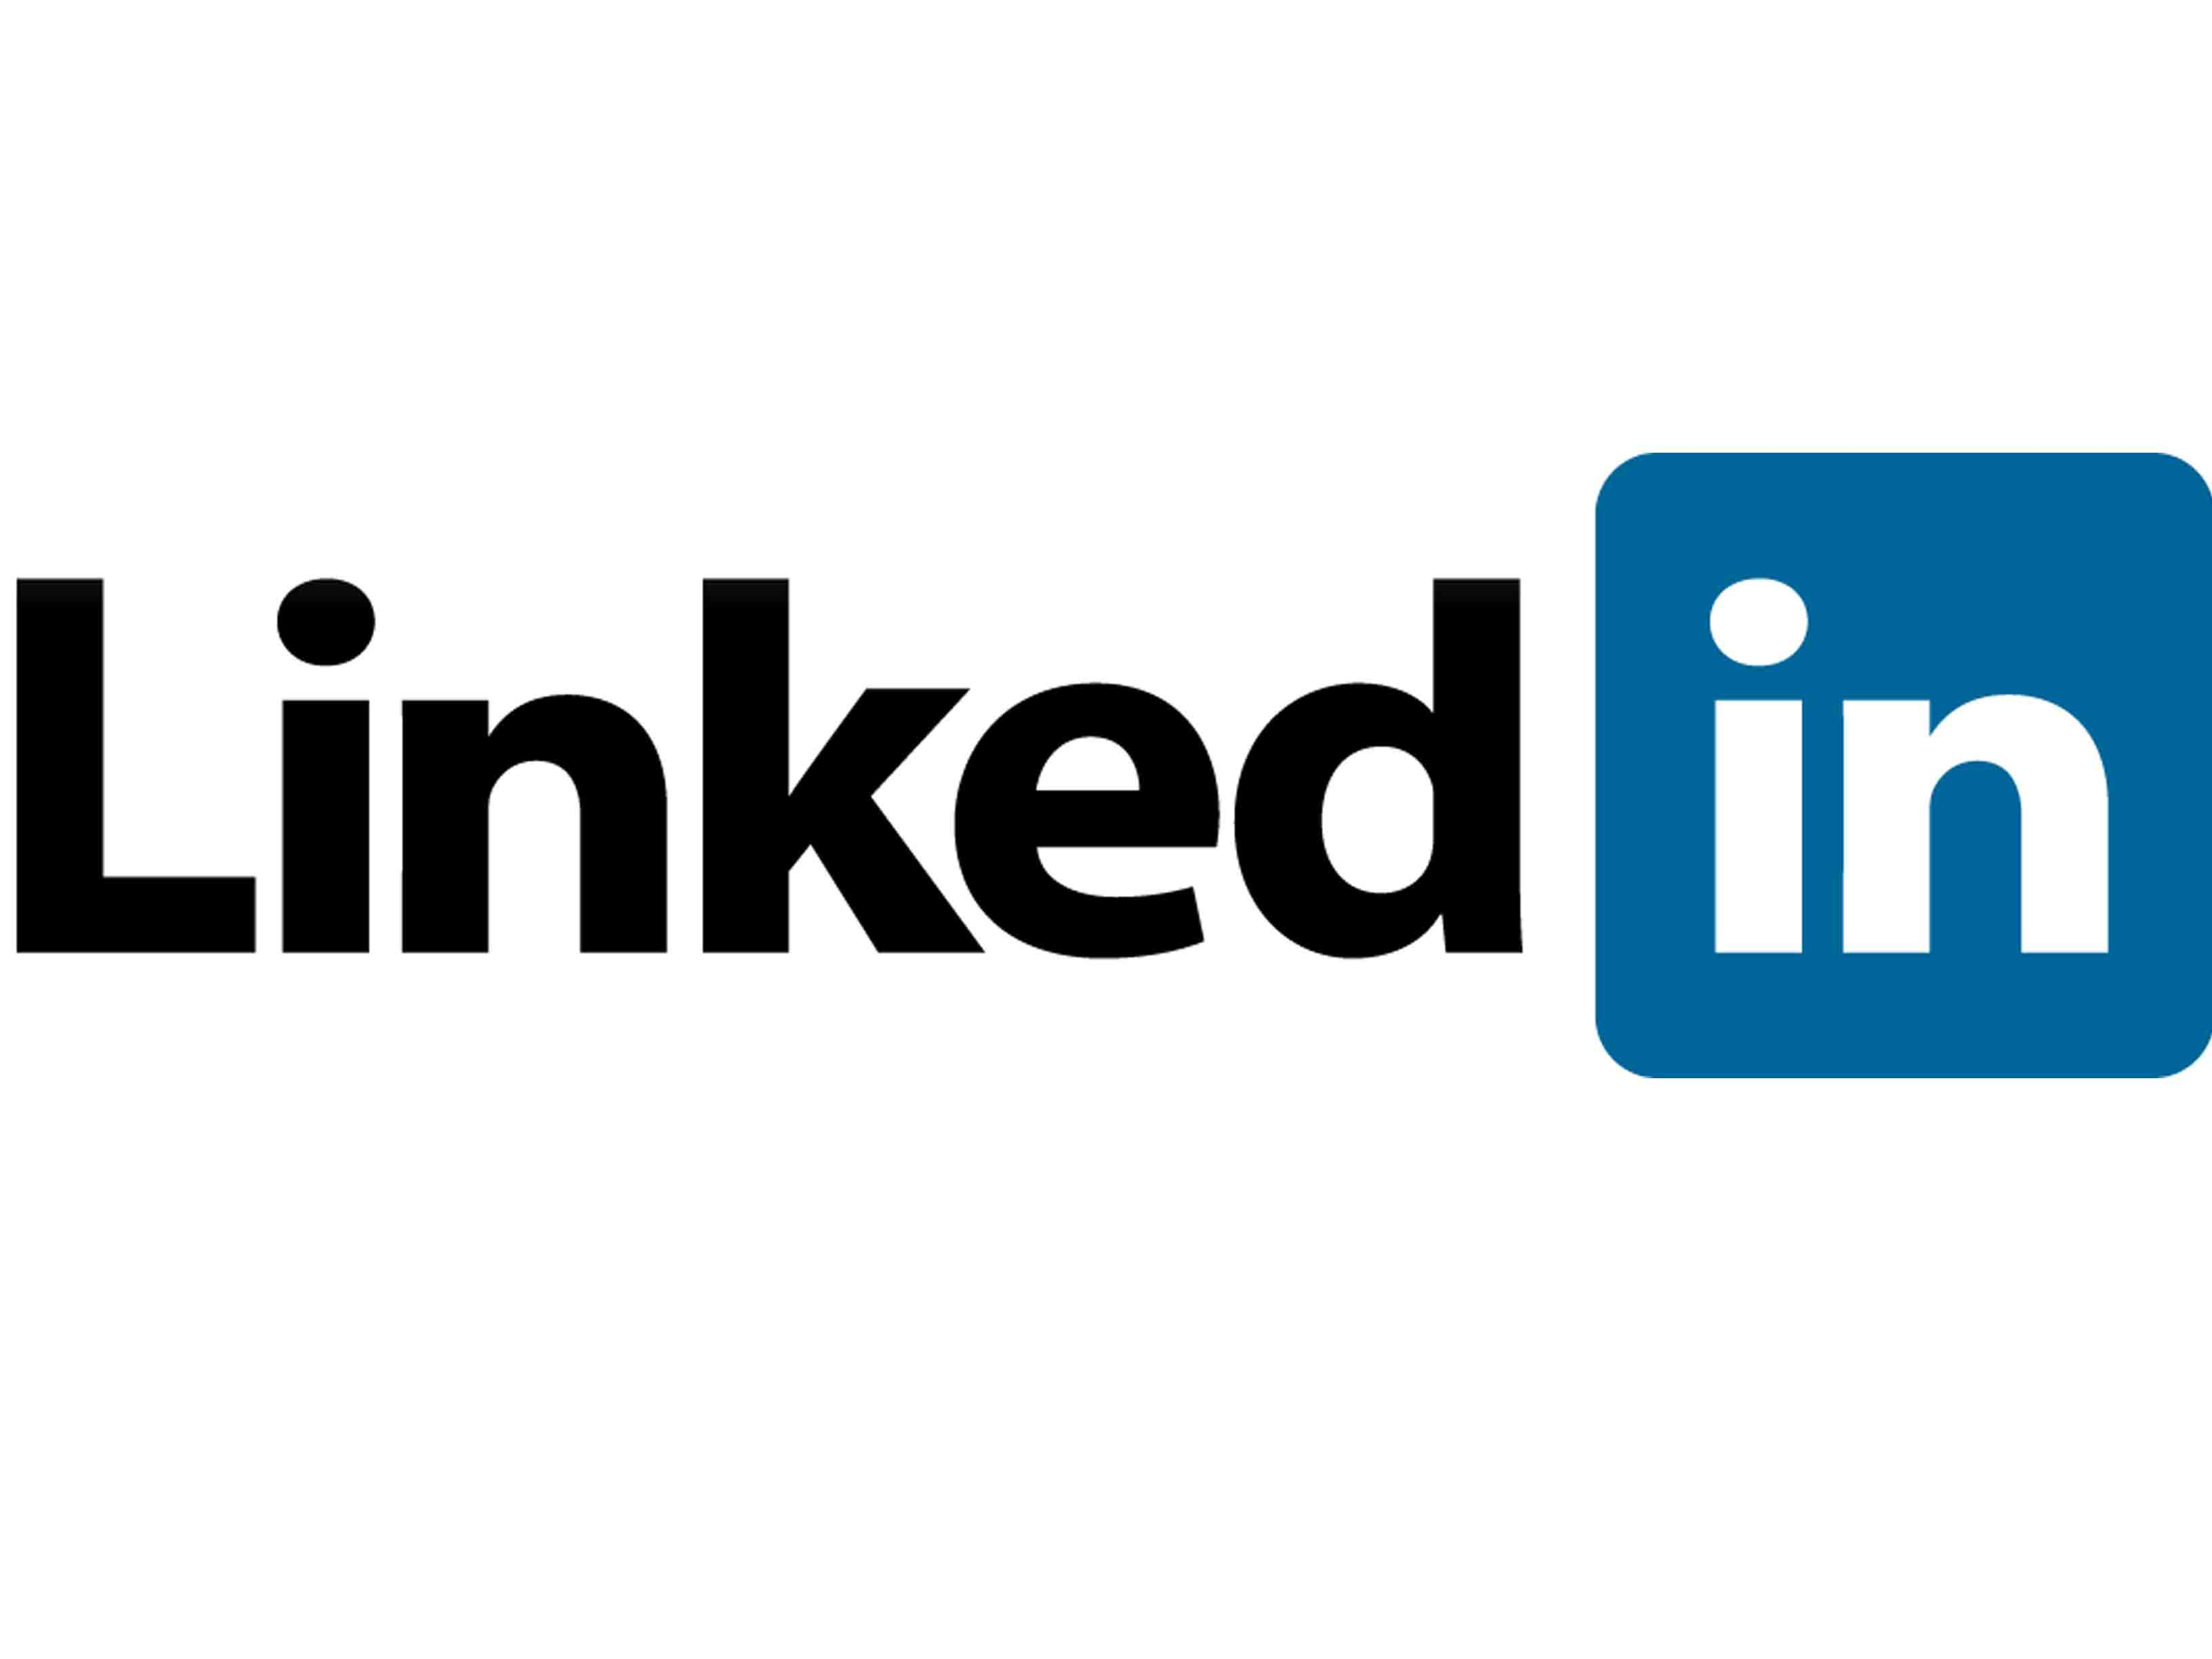 Is Linkedin good for finding eCommerce jobs?